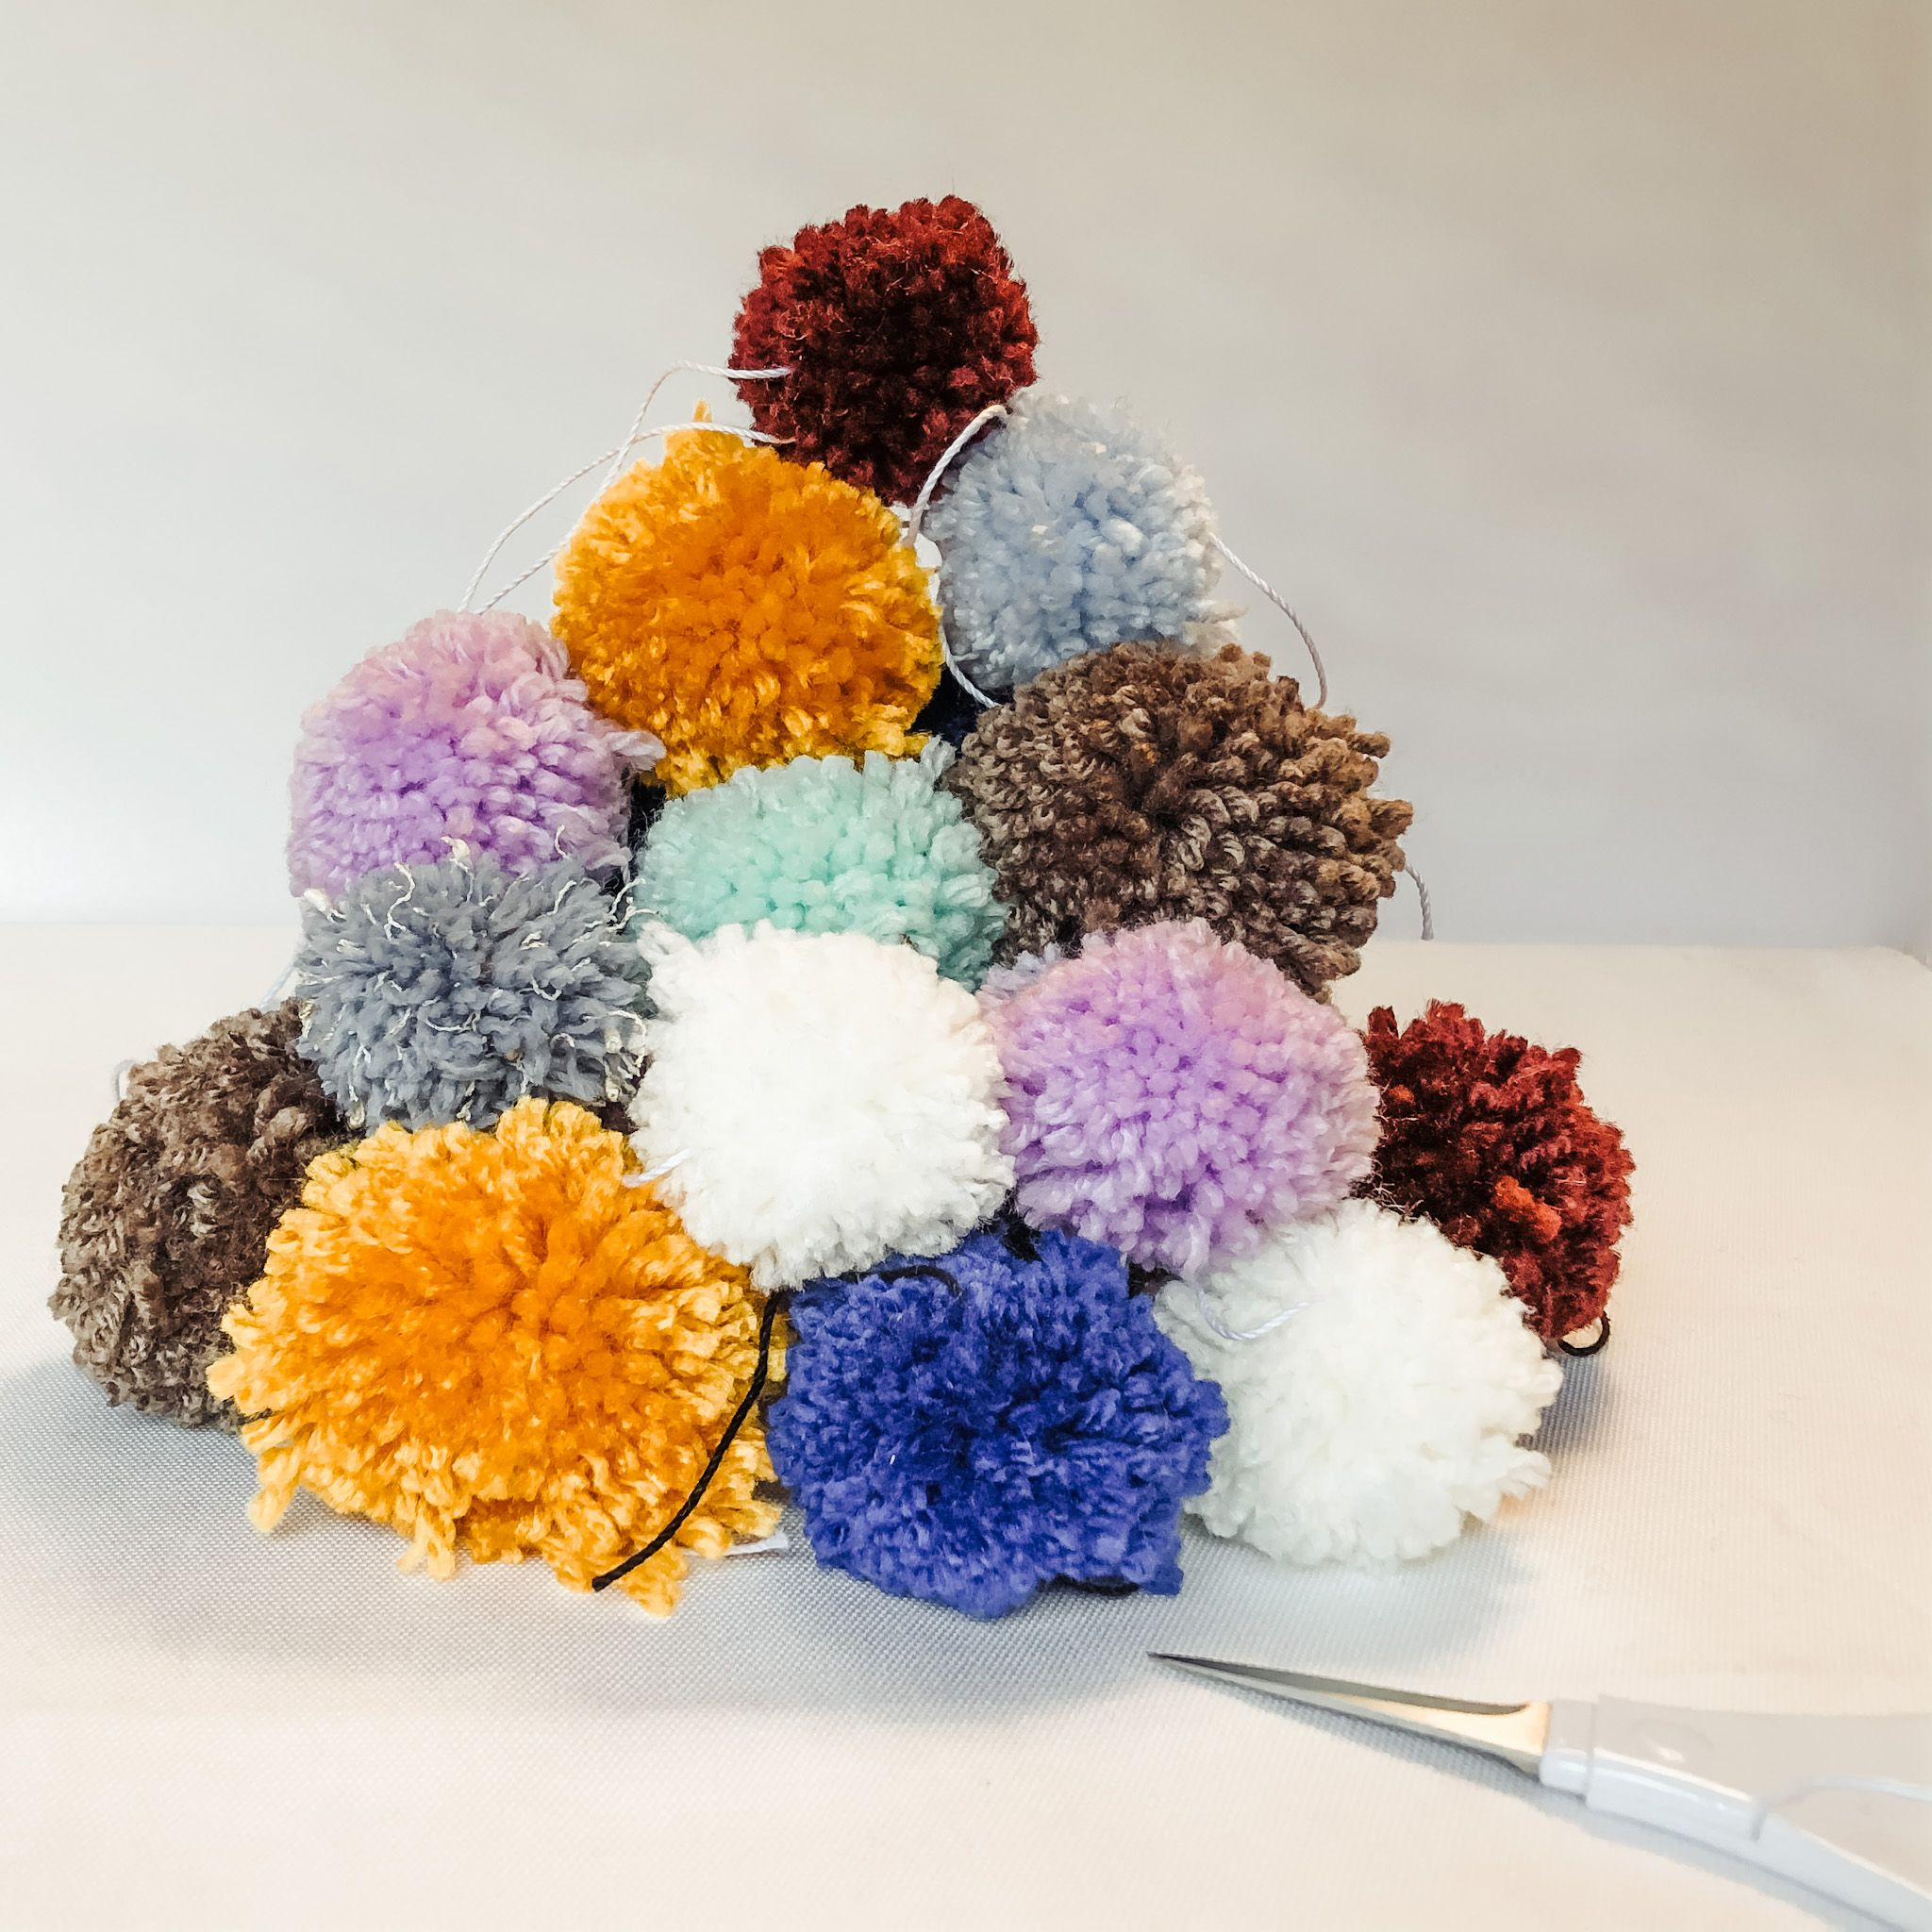 A pile of untrimmed pom poms waiting to be trimmed and turned into earrings. #pompoms #pompommaking #makersgonnamake #pomopmearrings #etsyseller #colorfulyarn #yarncrafts